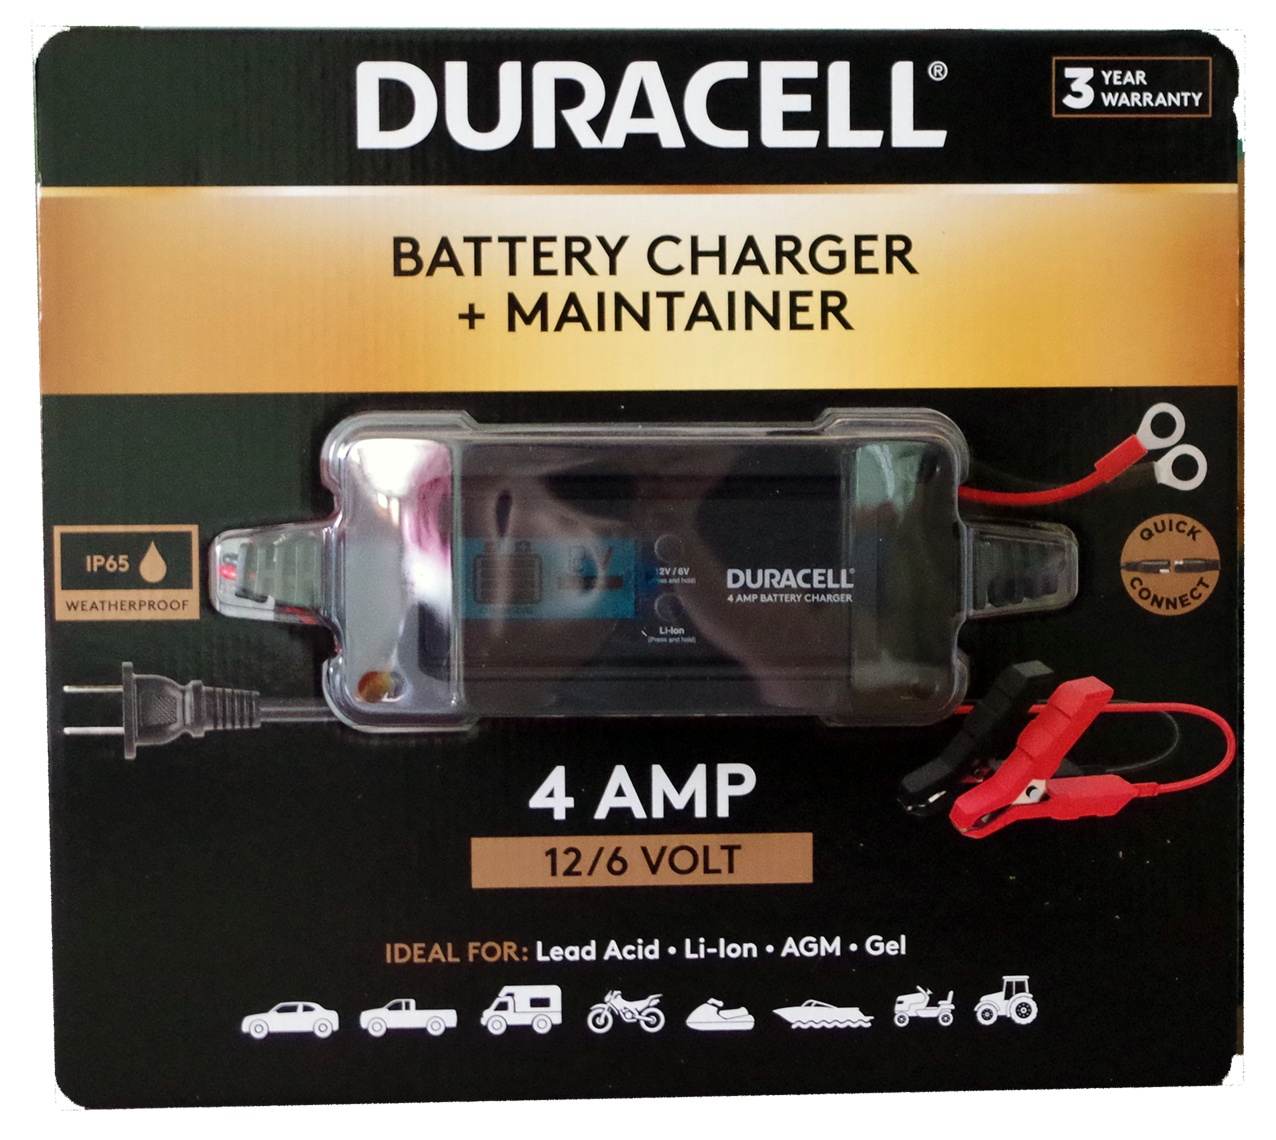 Duracell 4 amp battery charger & maintainer